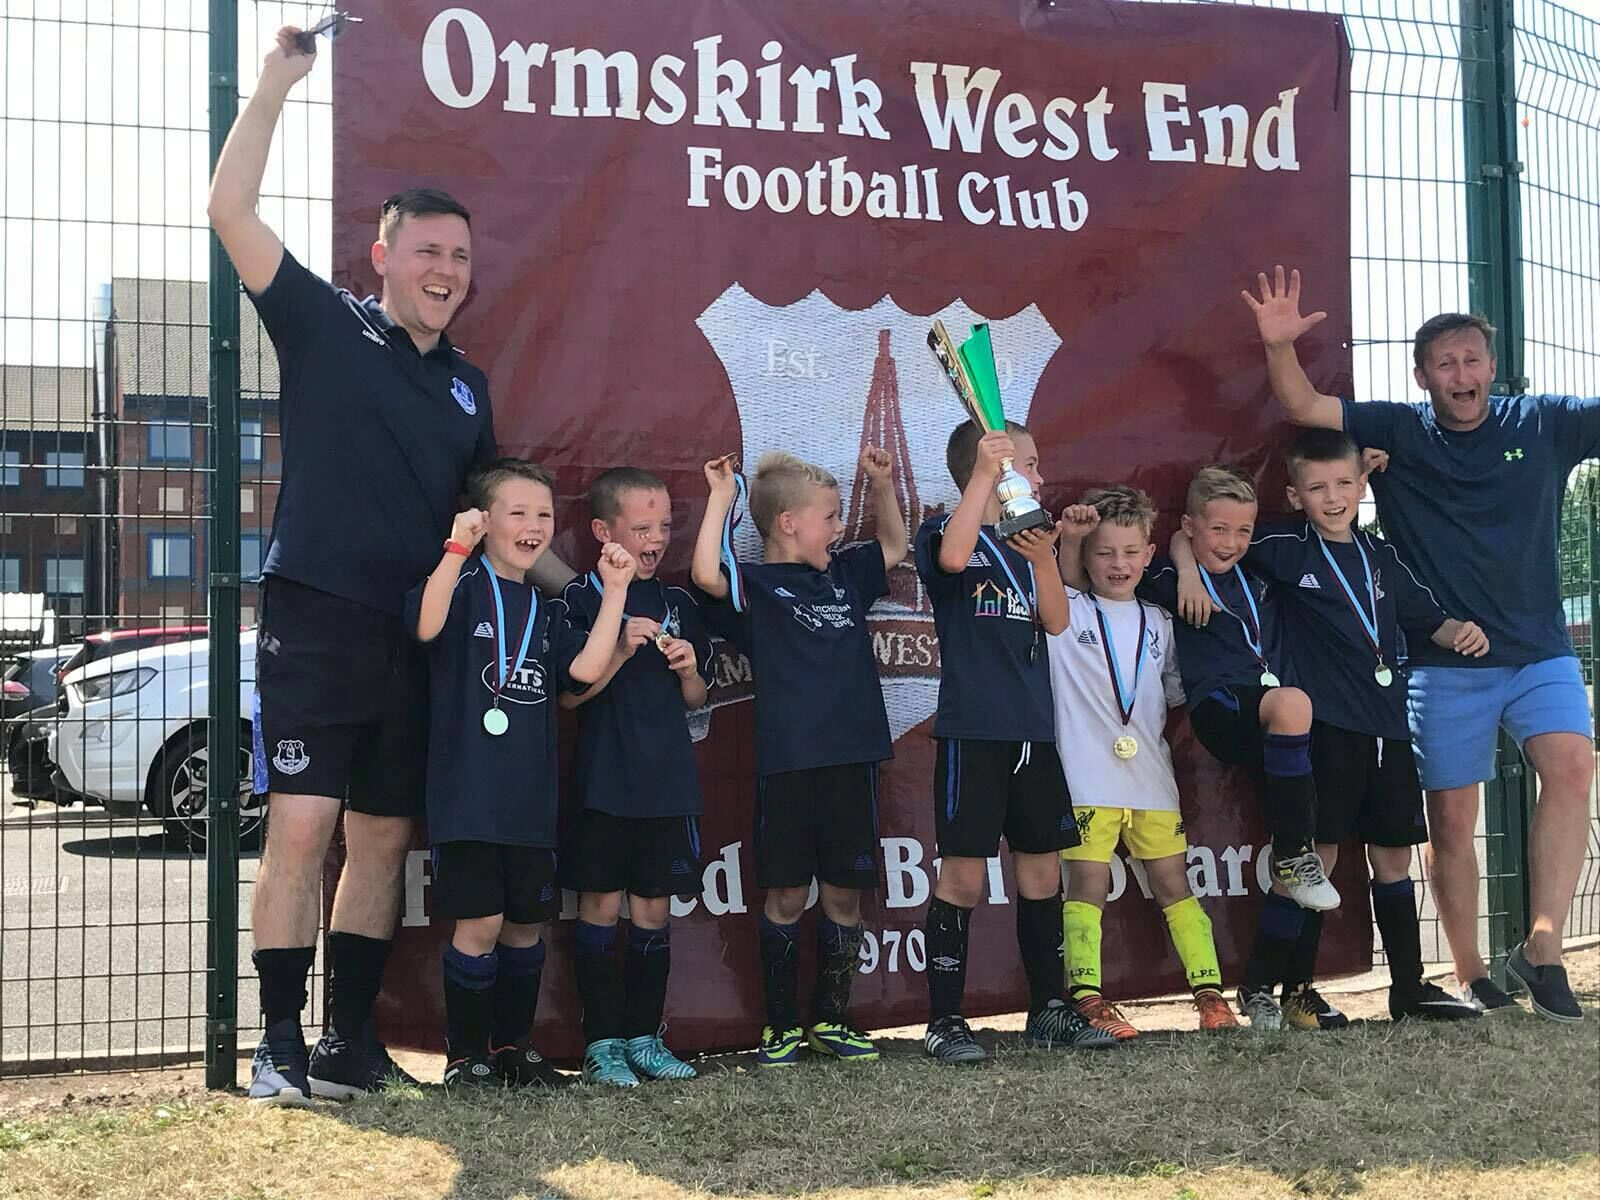 Under 7s win the Ormskirk West End Tournament